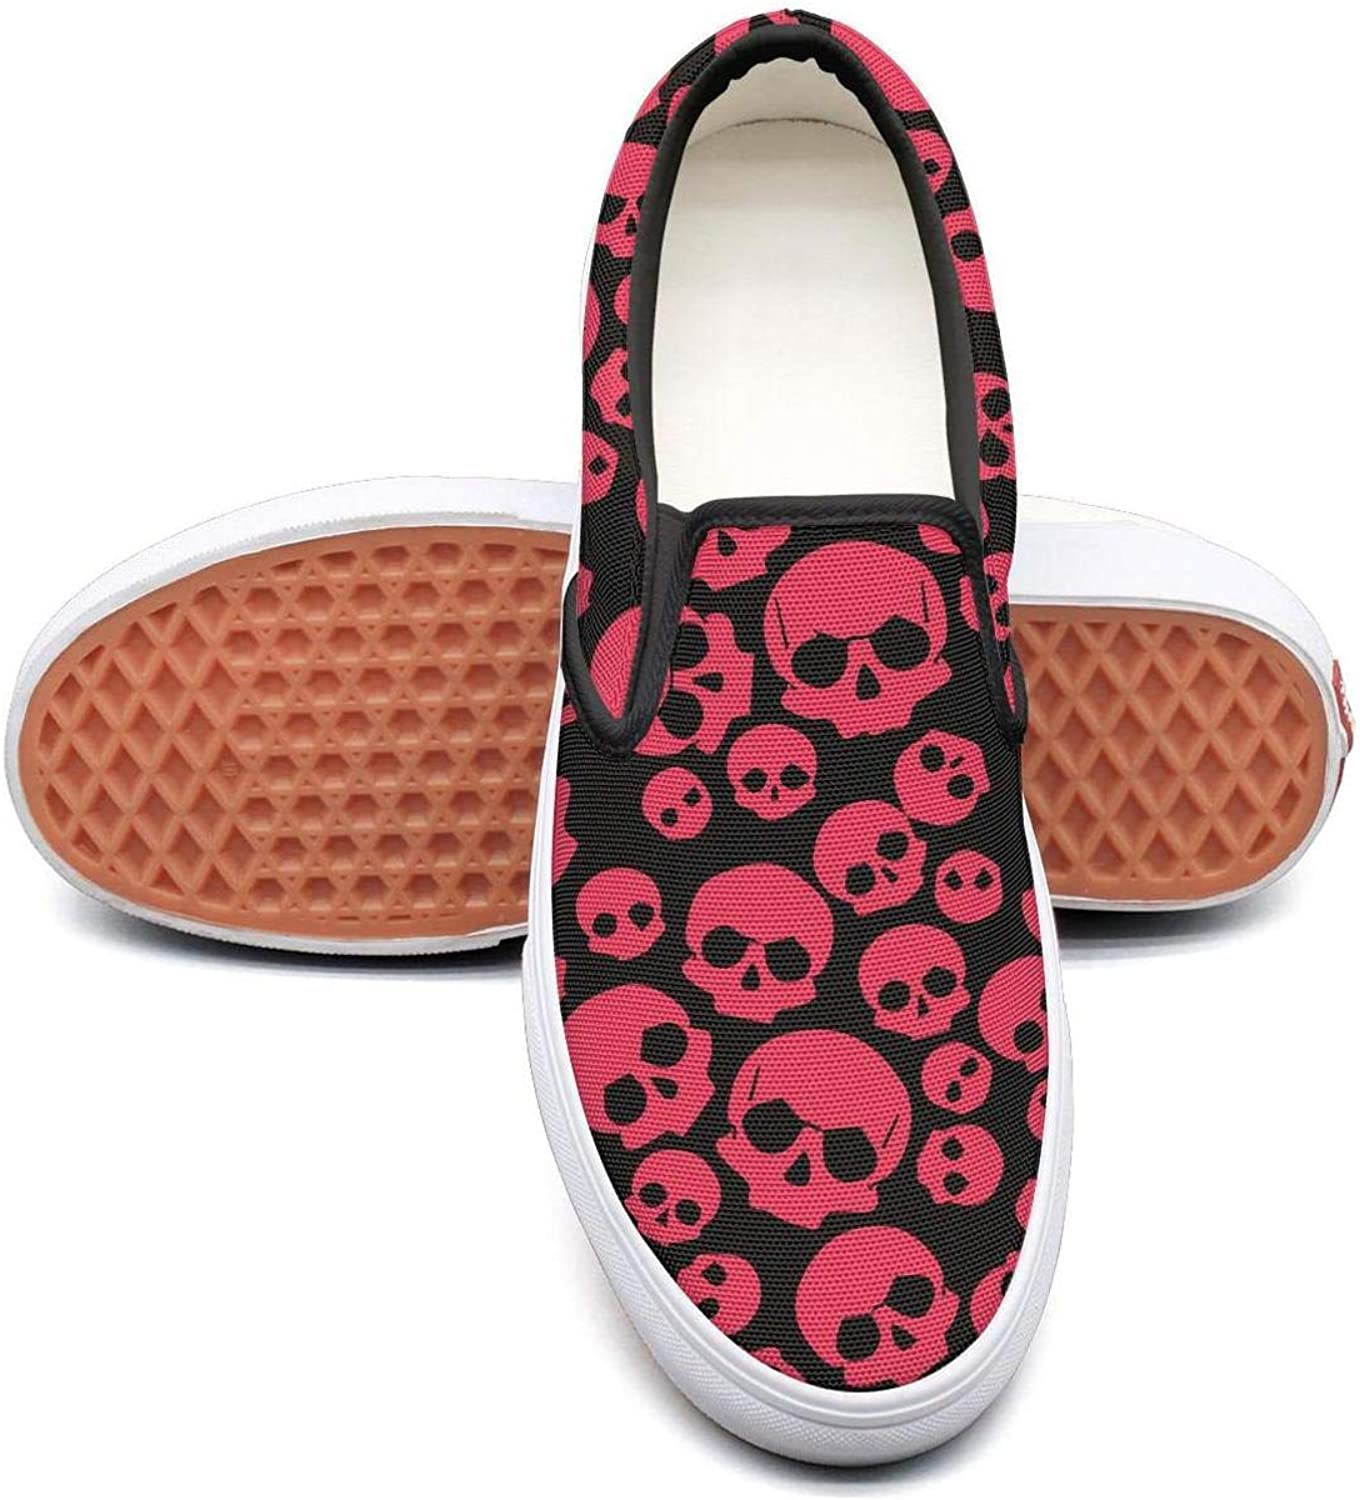 Cool Skull (2) Slip On Canvas Upper Sneakers Canvas shoes for Women Fashion